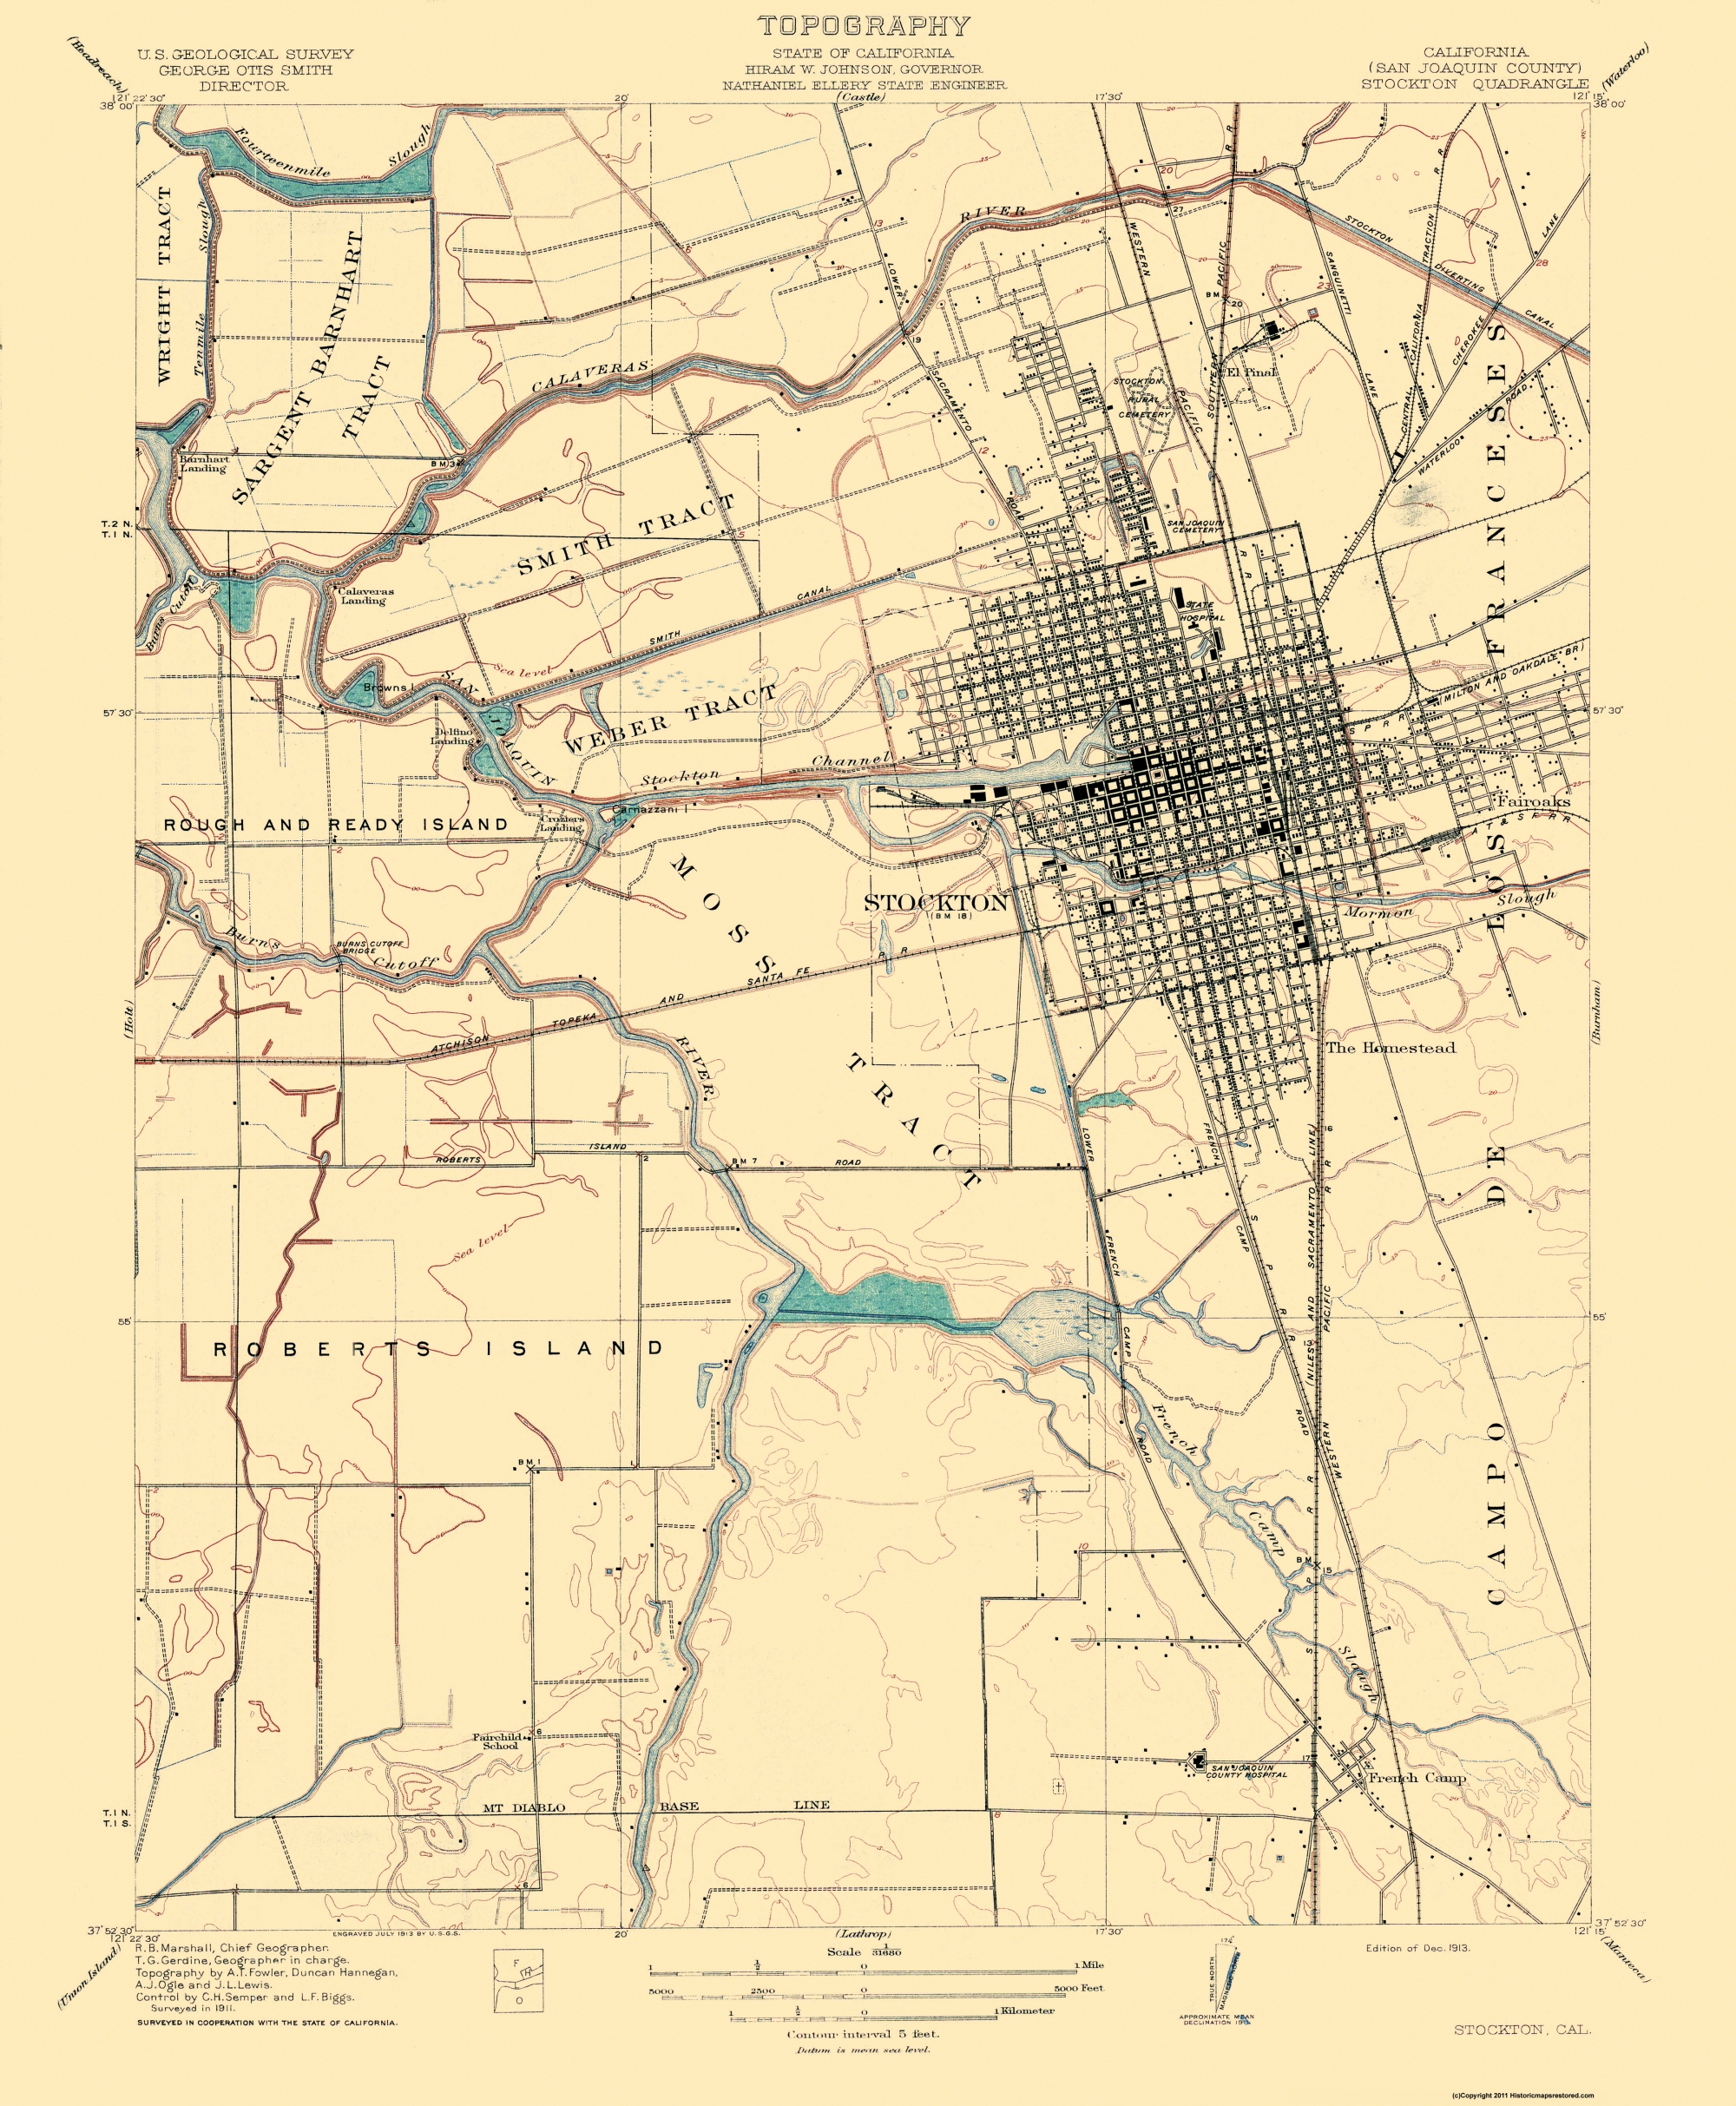 Old Topographical Map - Stockton California 1913